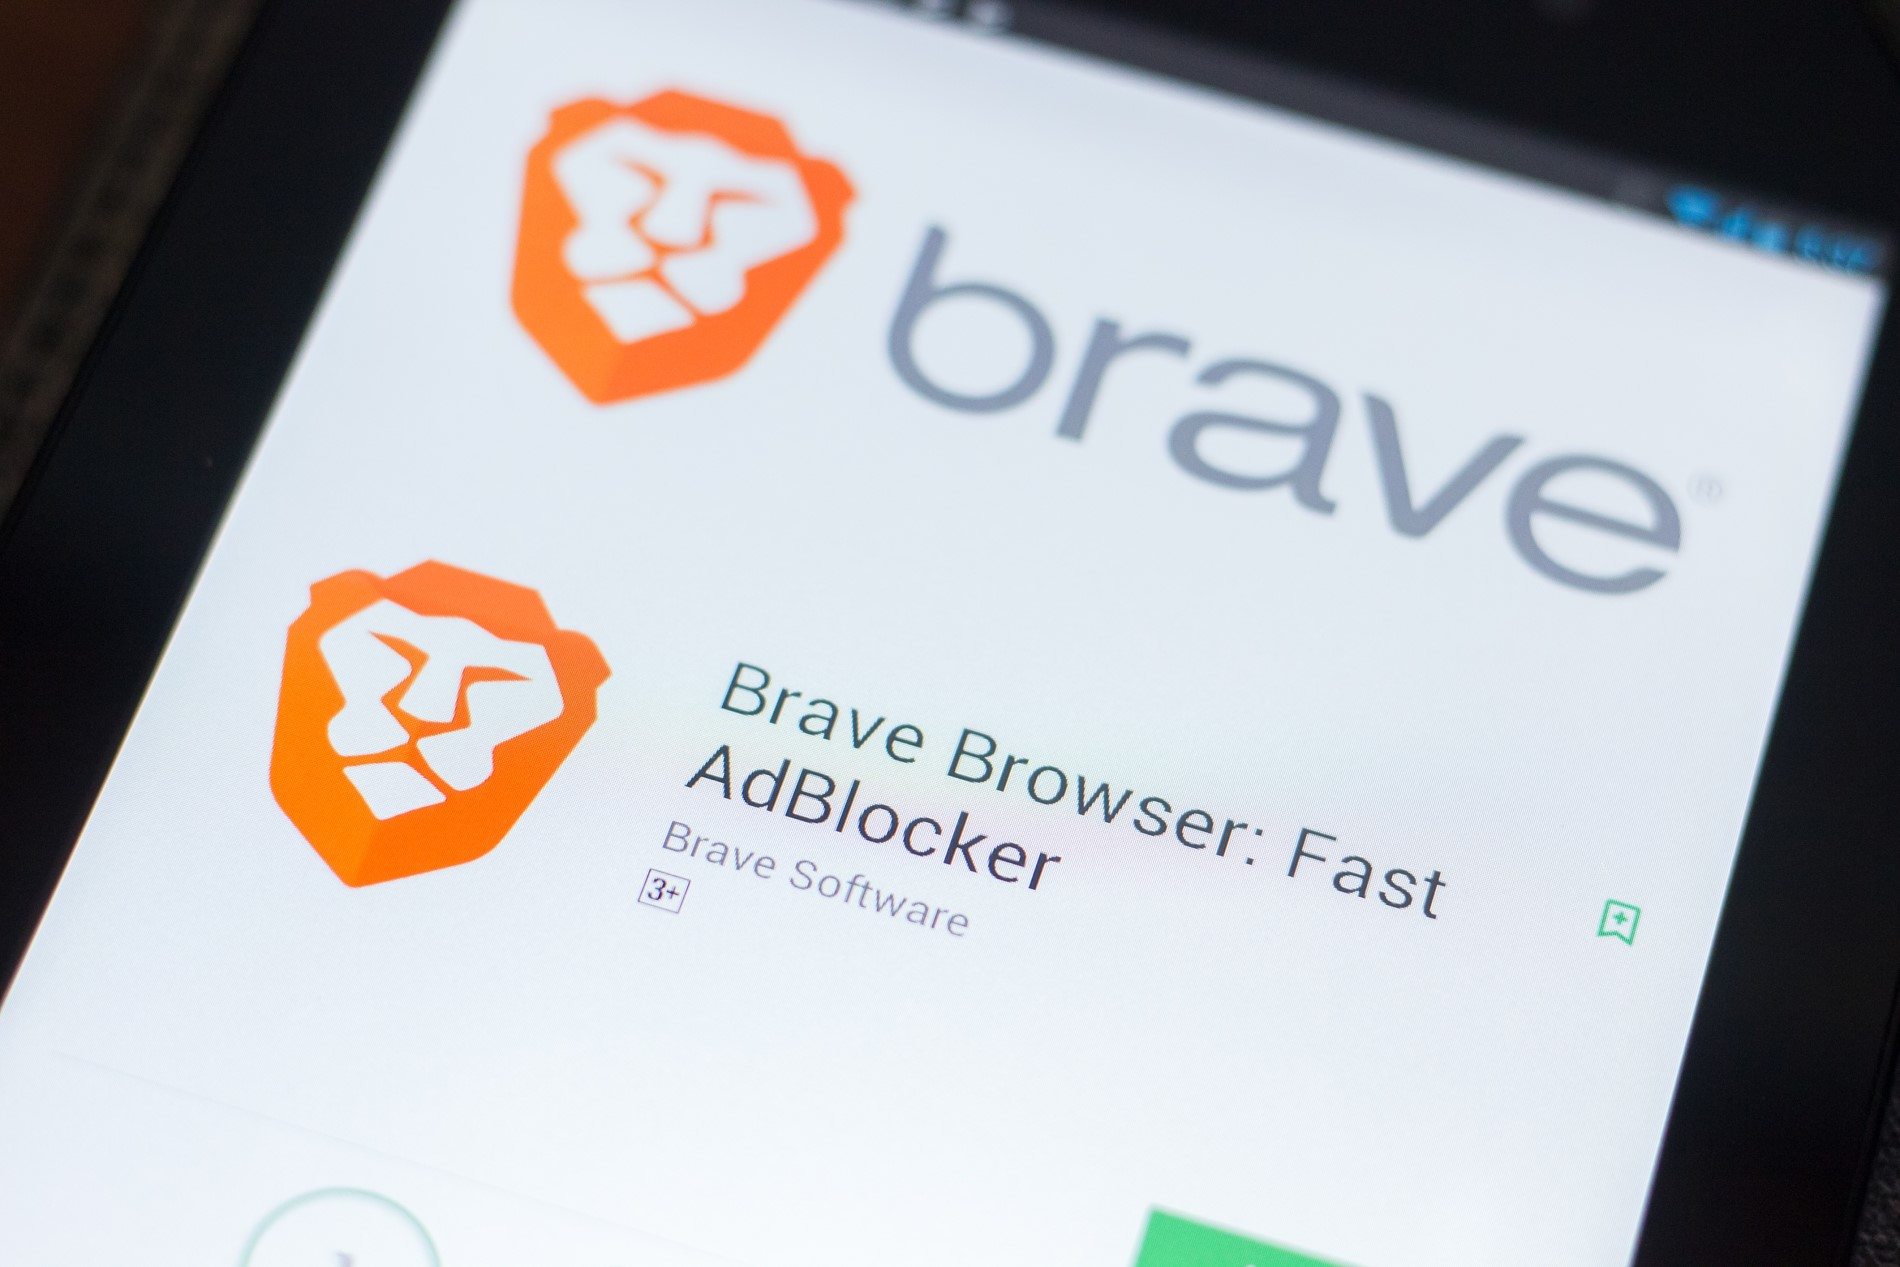 Privacy-focused Brave browser boasts 8M monthly active users